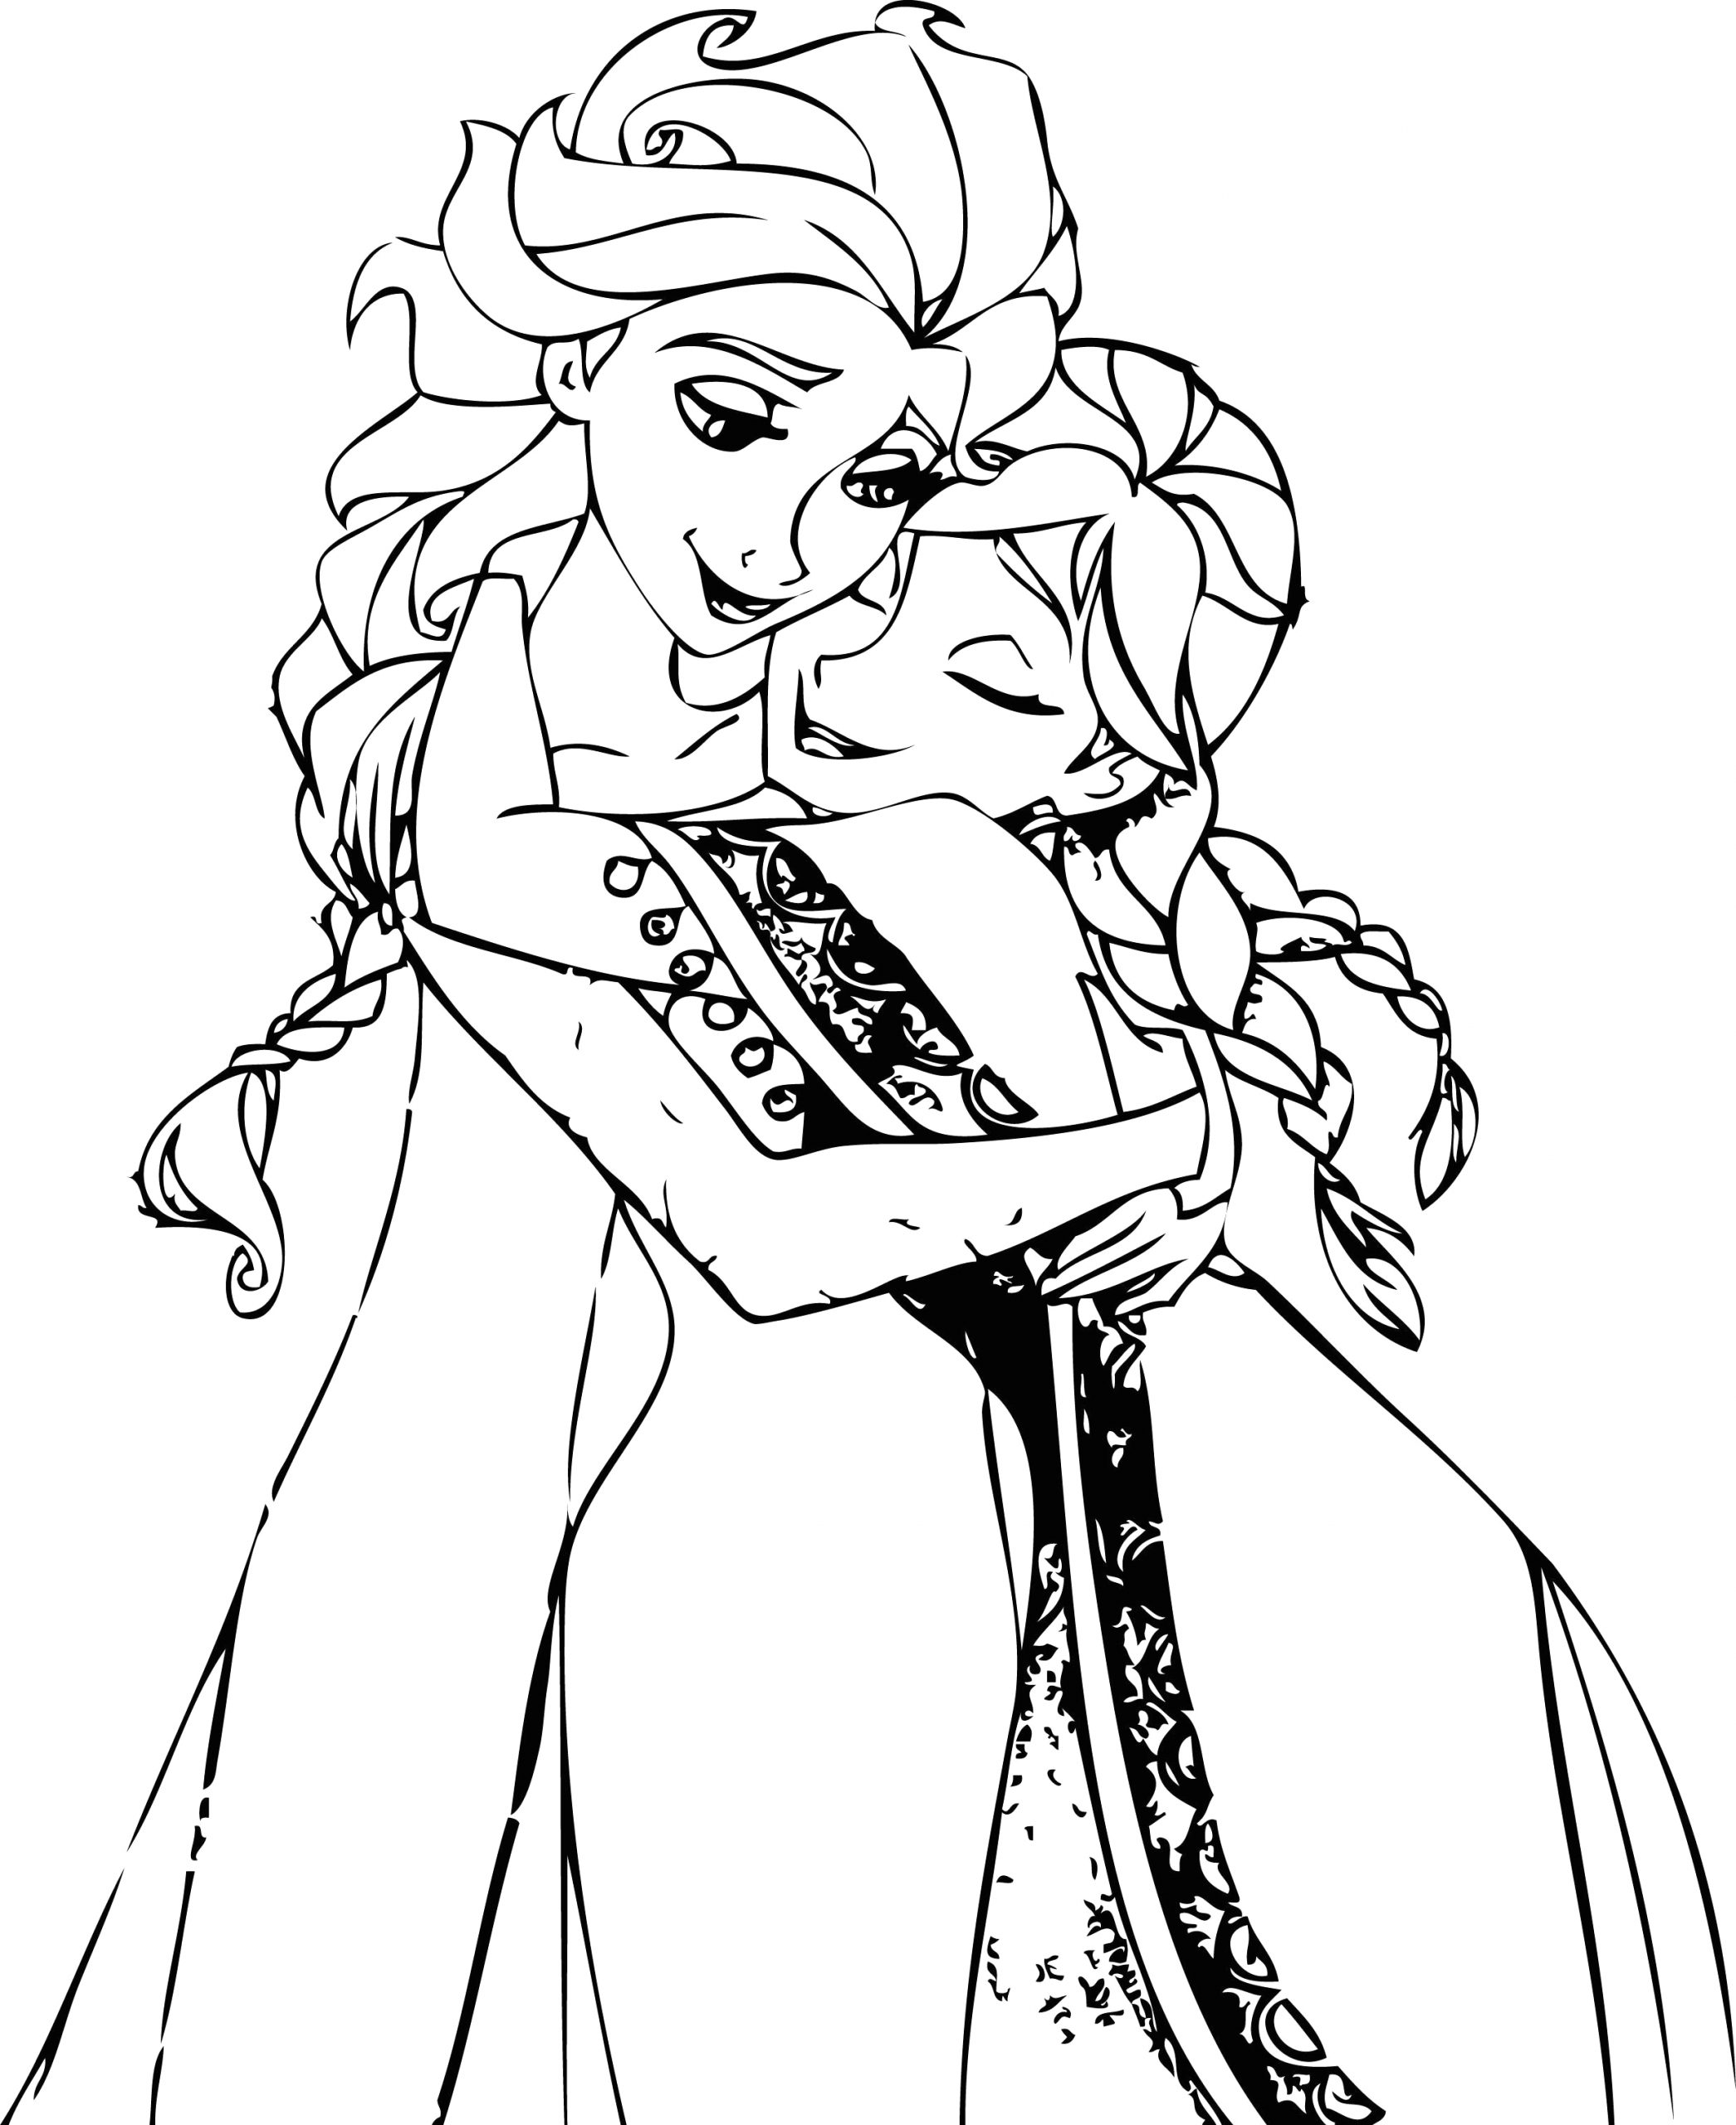 Elsa and Anna Coloring Pages to Print Elsa and Anna Coloring Pages Coloring Home